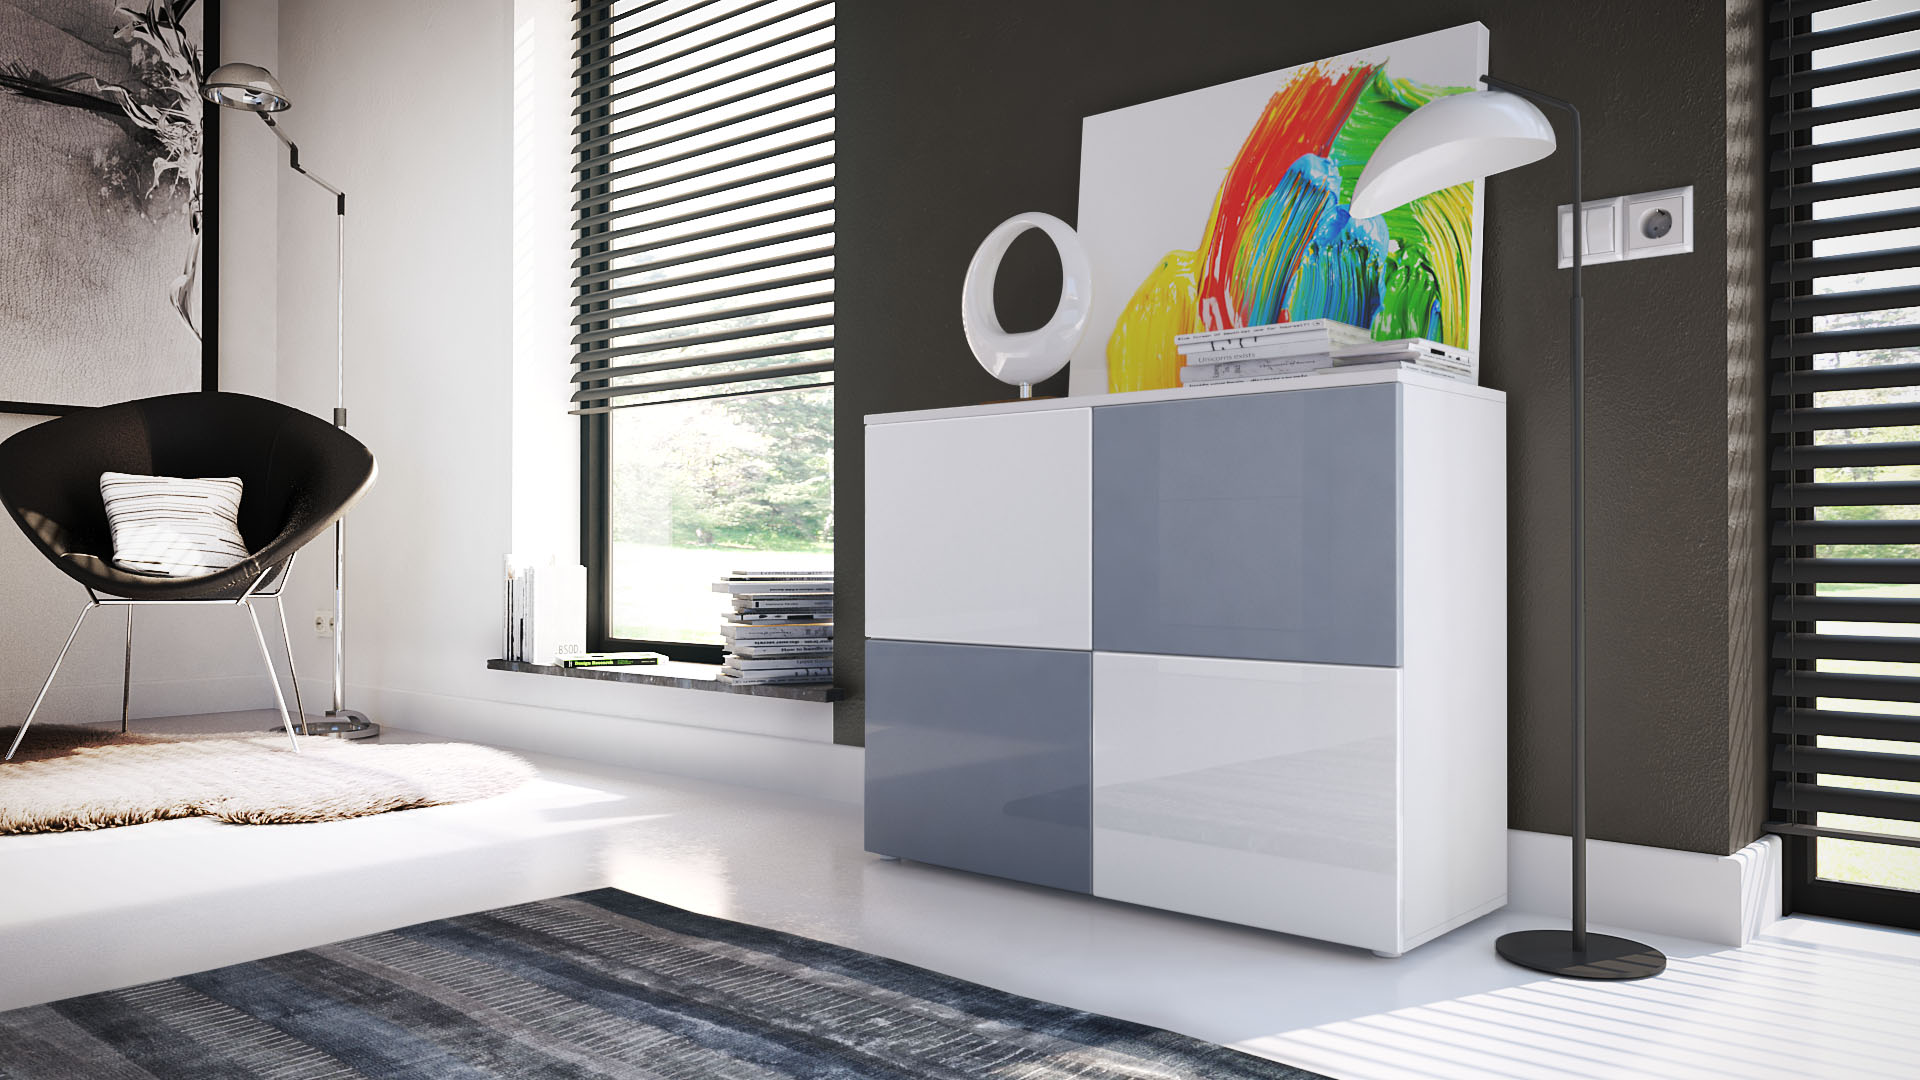 kommode schrank anrichte sideboard rova in wei hochglanz naturt ne ebay. Black Bedroom Furniture Sets. Home Design Ideas